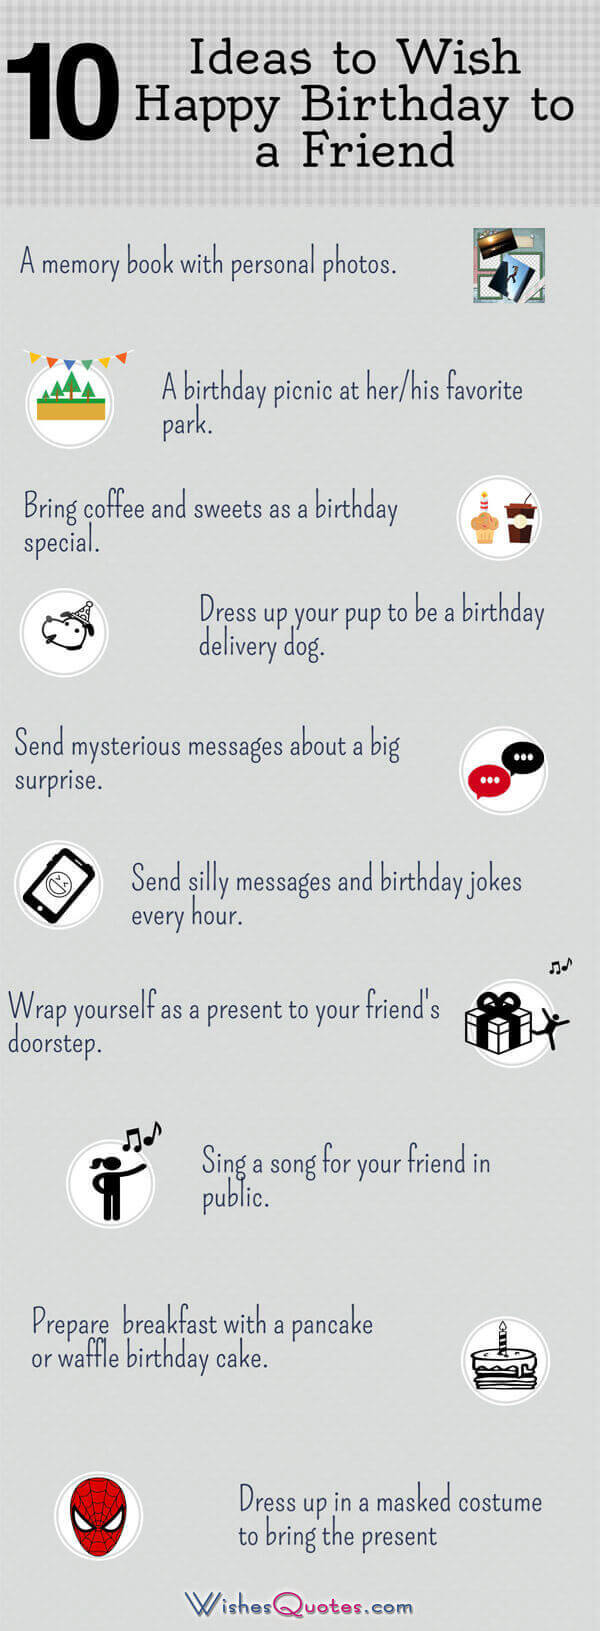 birthday message for a friend images ; Happy-Birthday-to-a-Friend-Infographic